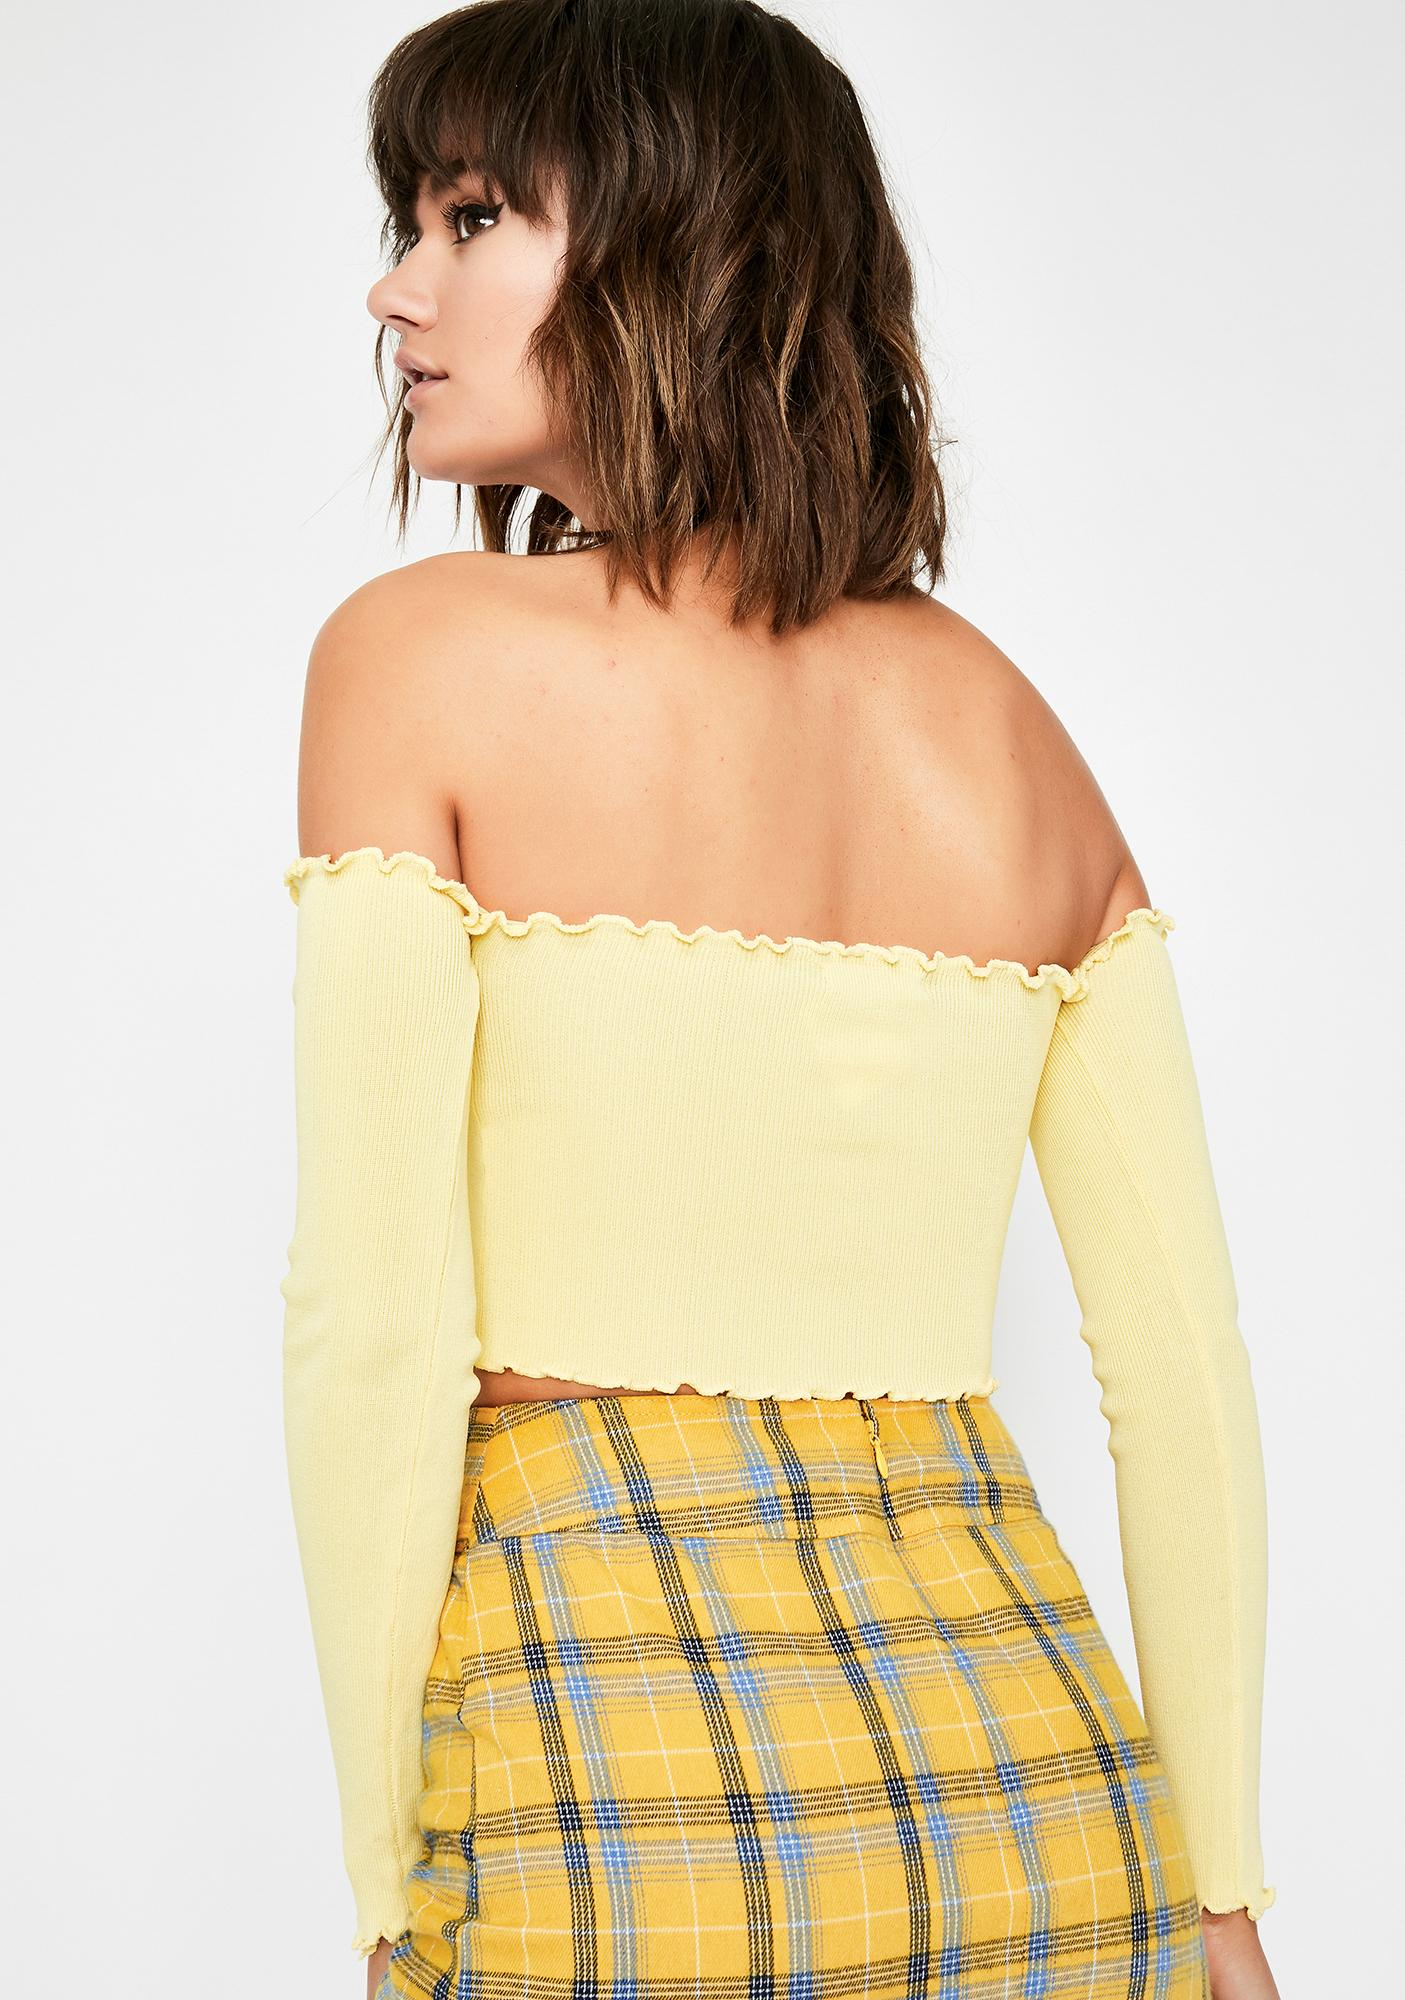 Sunny Twice As Nice Crop Top